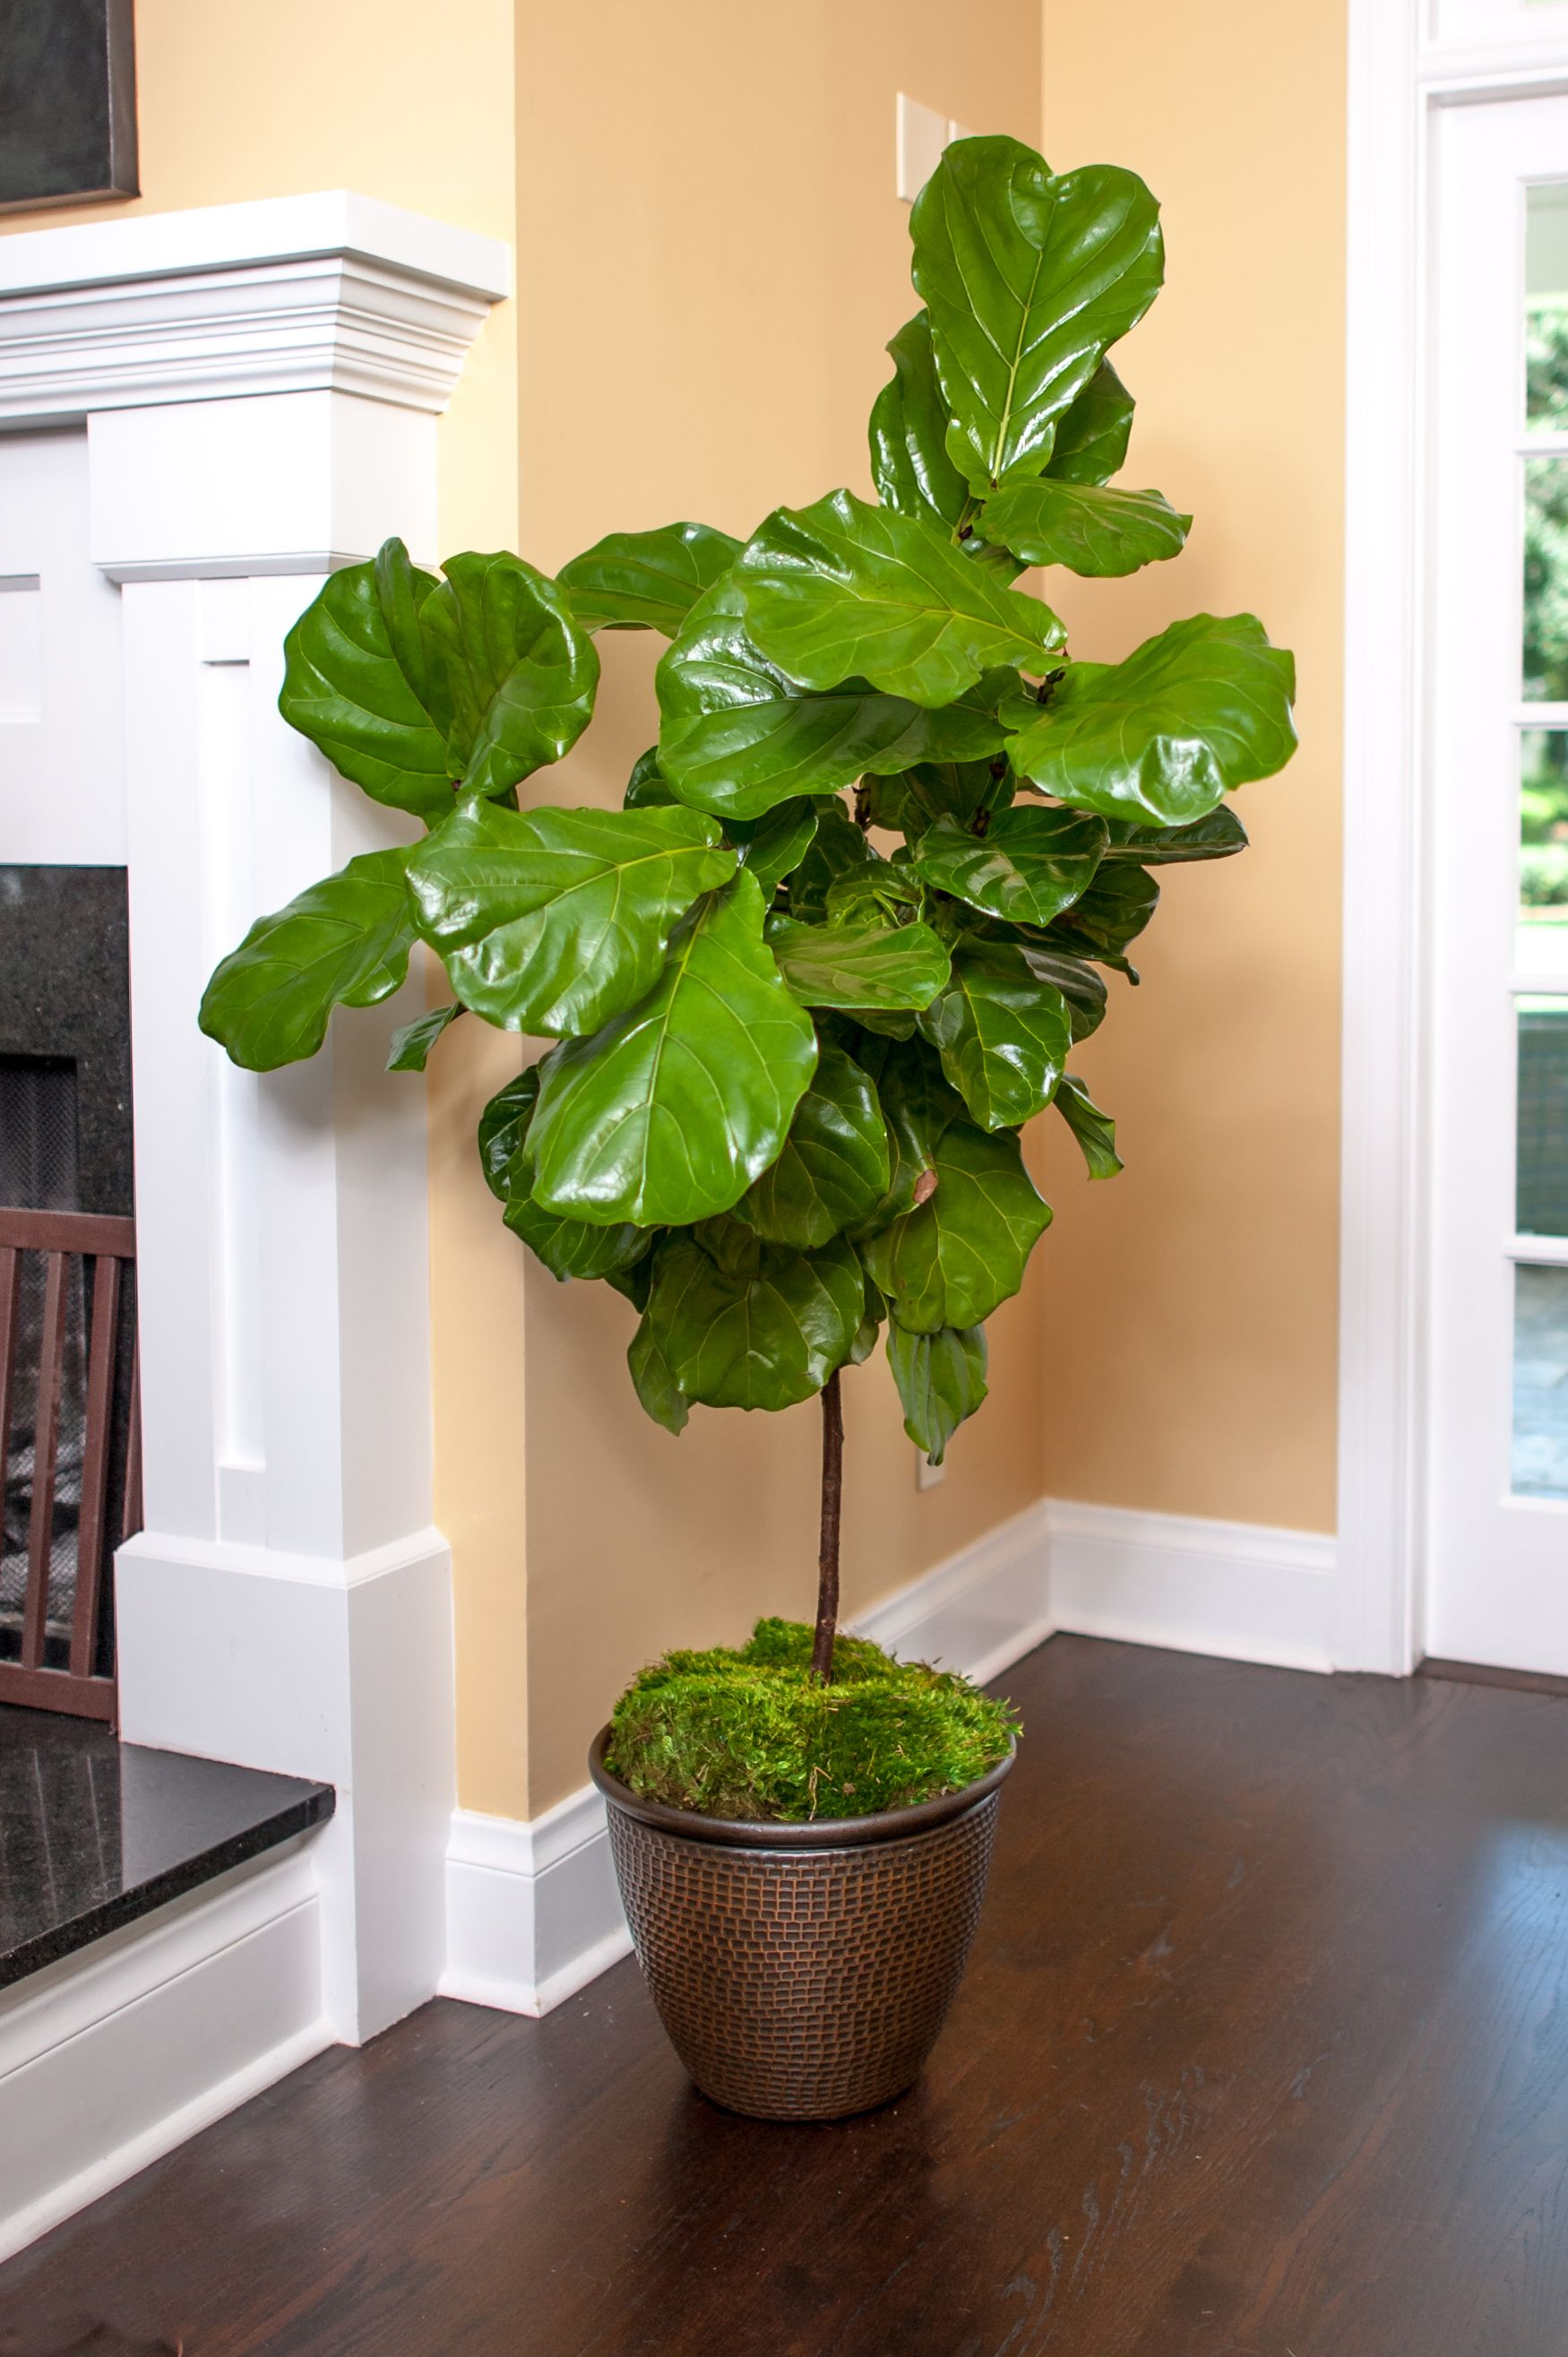 Fiddle Leaf Fig Full Size Ficus Lyrata Plants For Sale Online Ficus Lyrata Fiddle Leaf Fig Tree Fiddle Leaf Fig